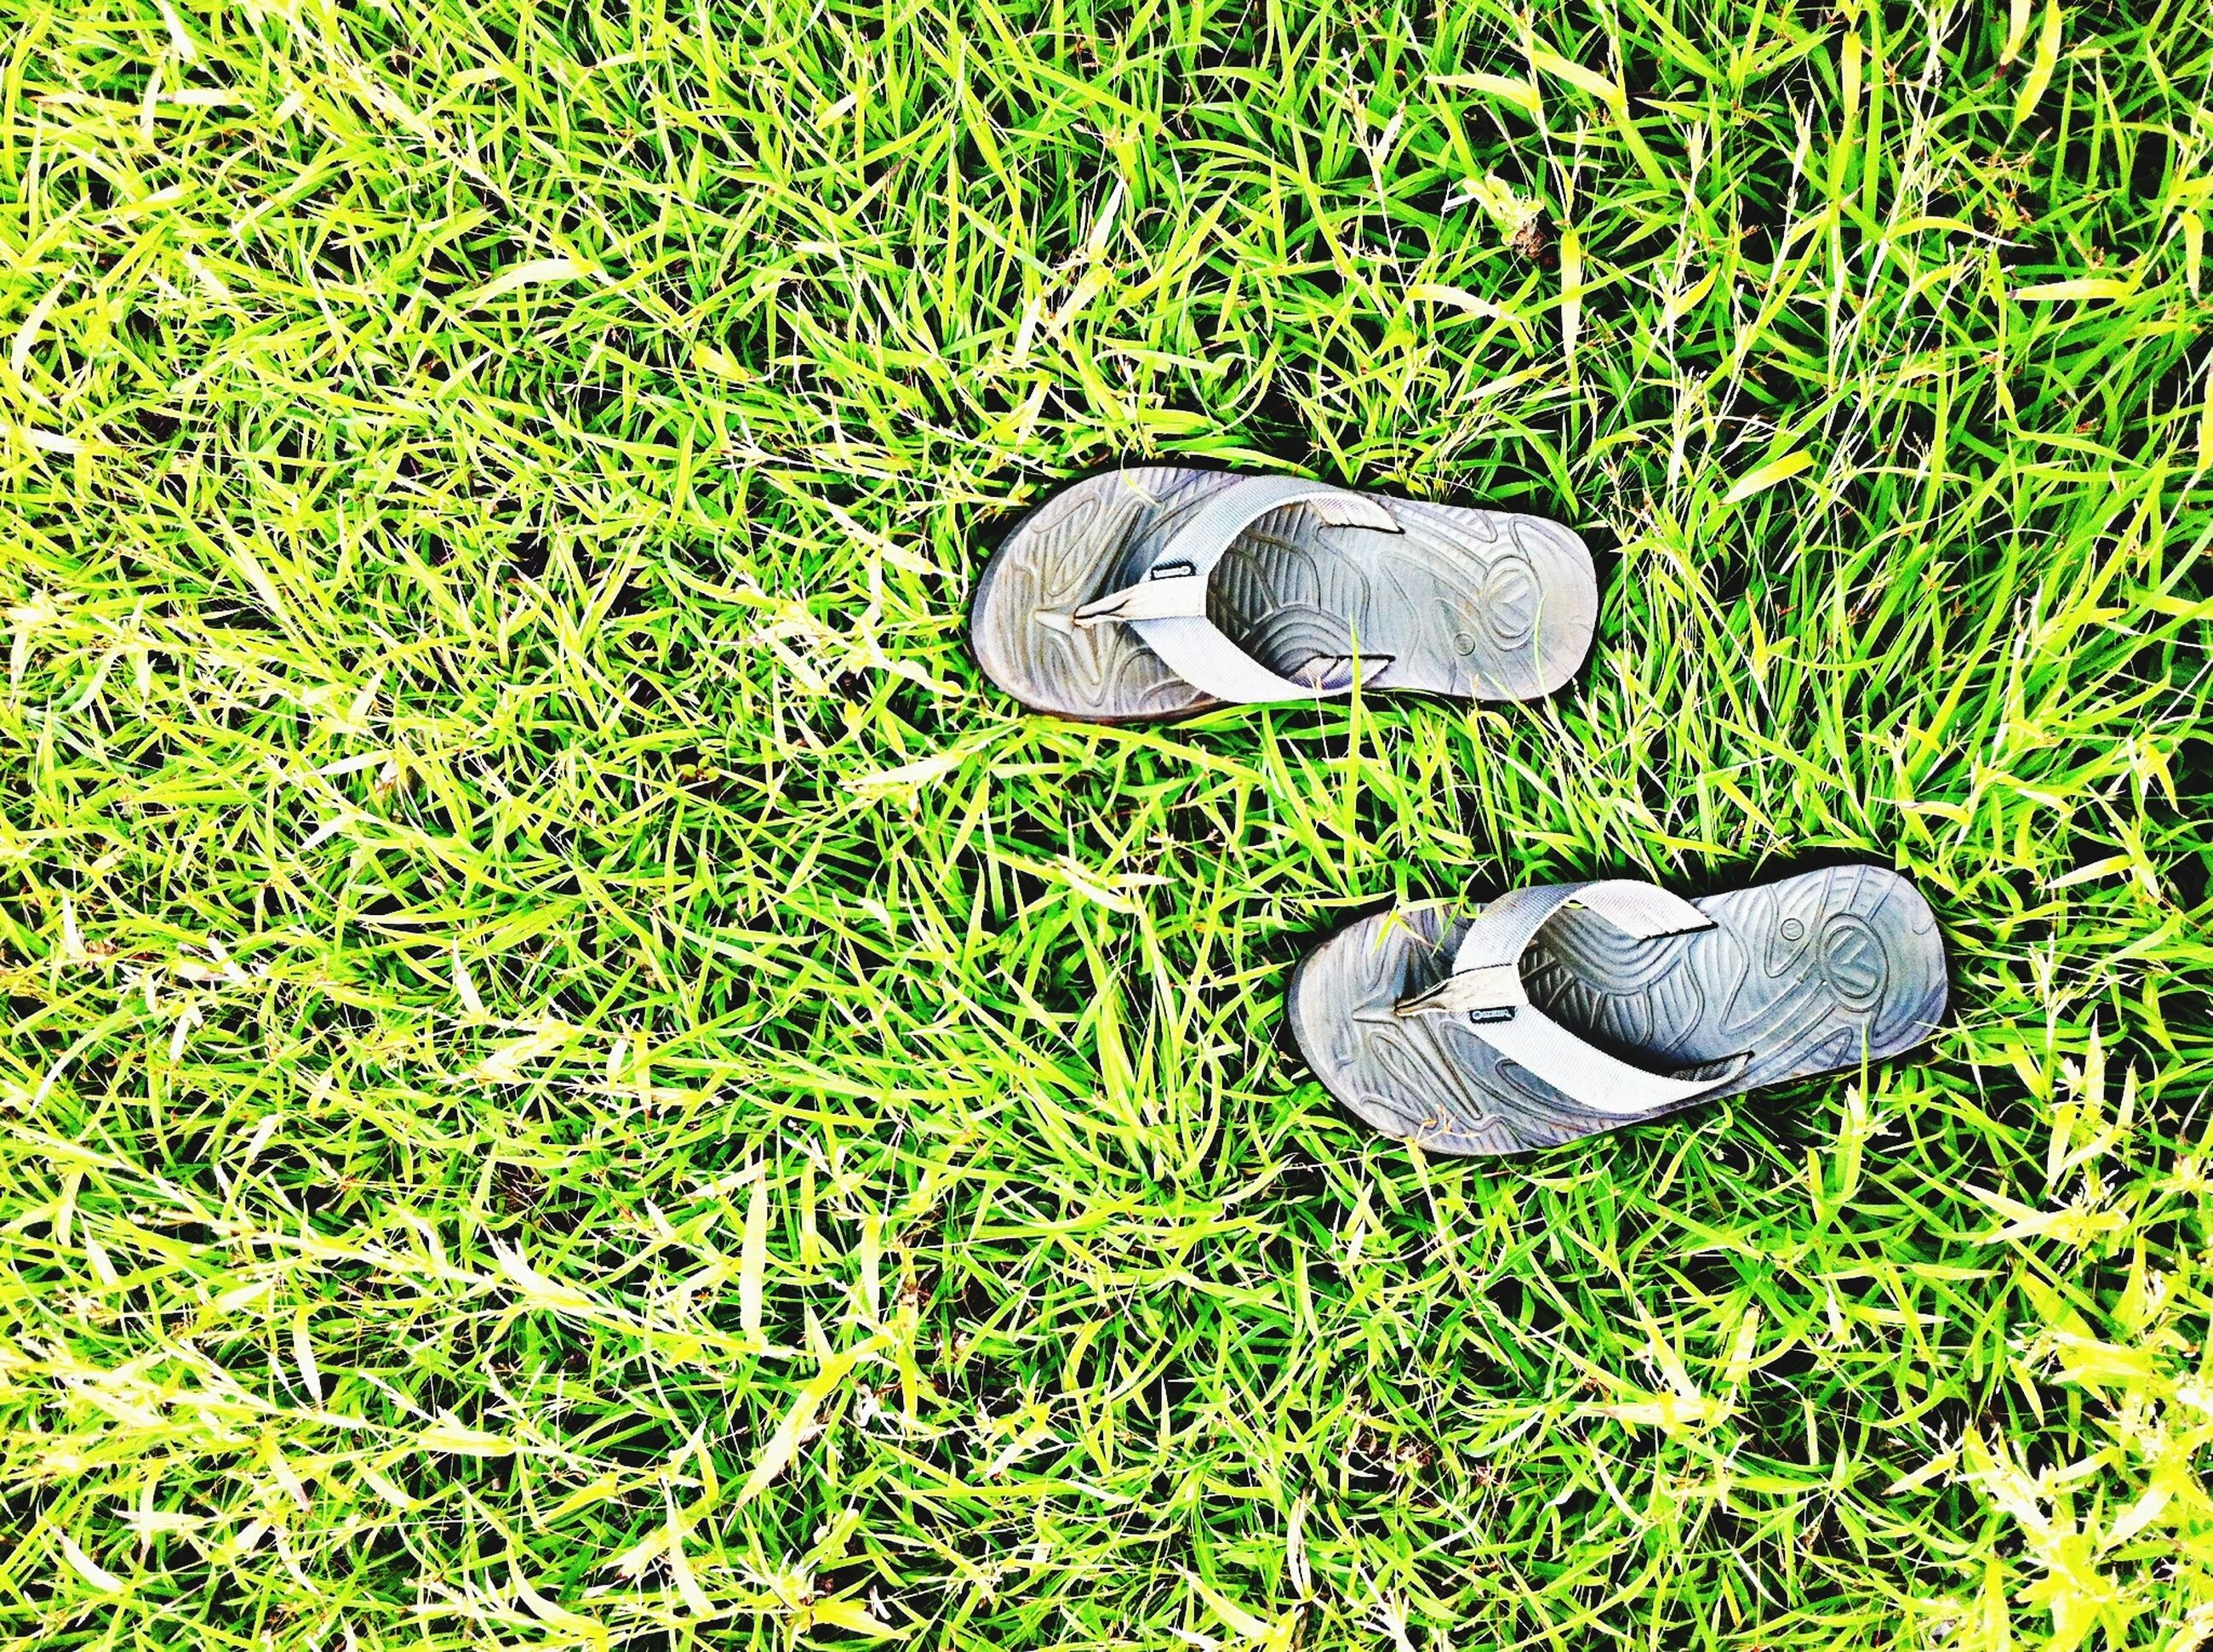 grass, grassy, field, green color, high angle view, shoe, old, growth, still life, communication, abandoned, close-up, day, footwear, metal, plant, number, lawn, grassland, no people